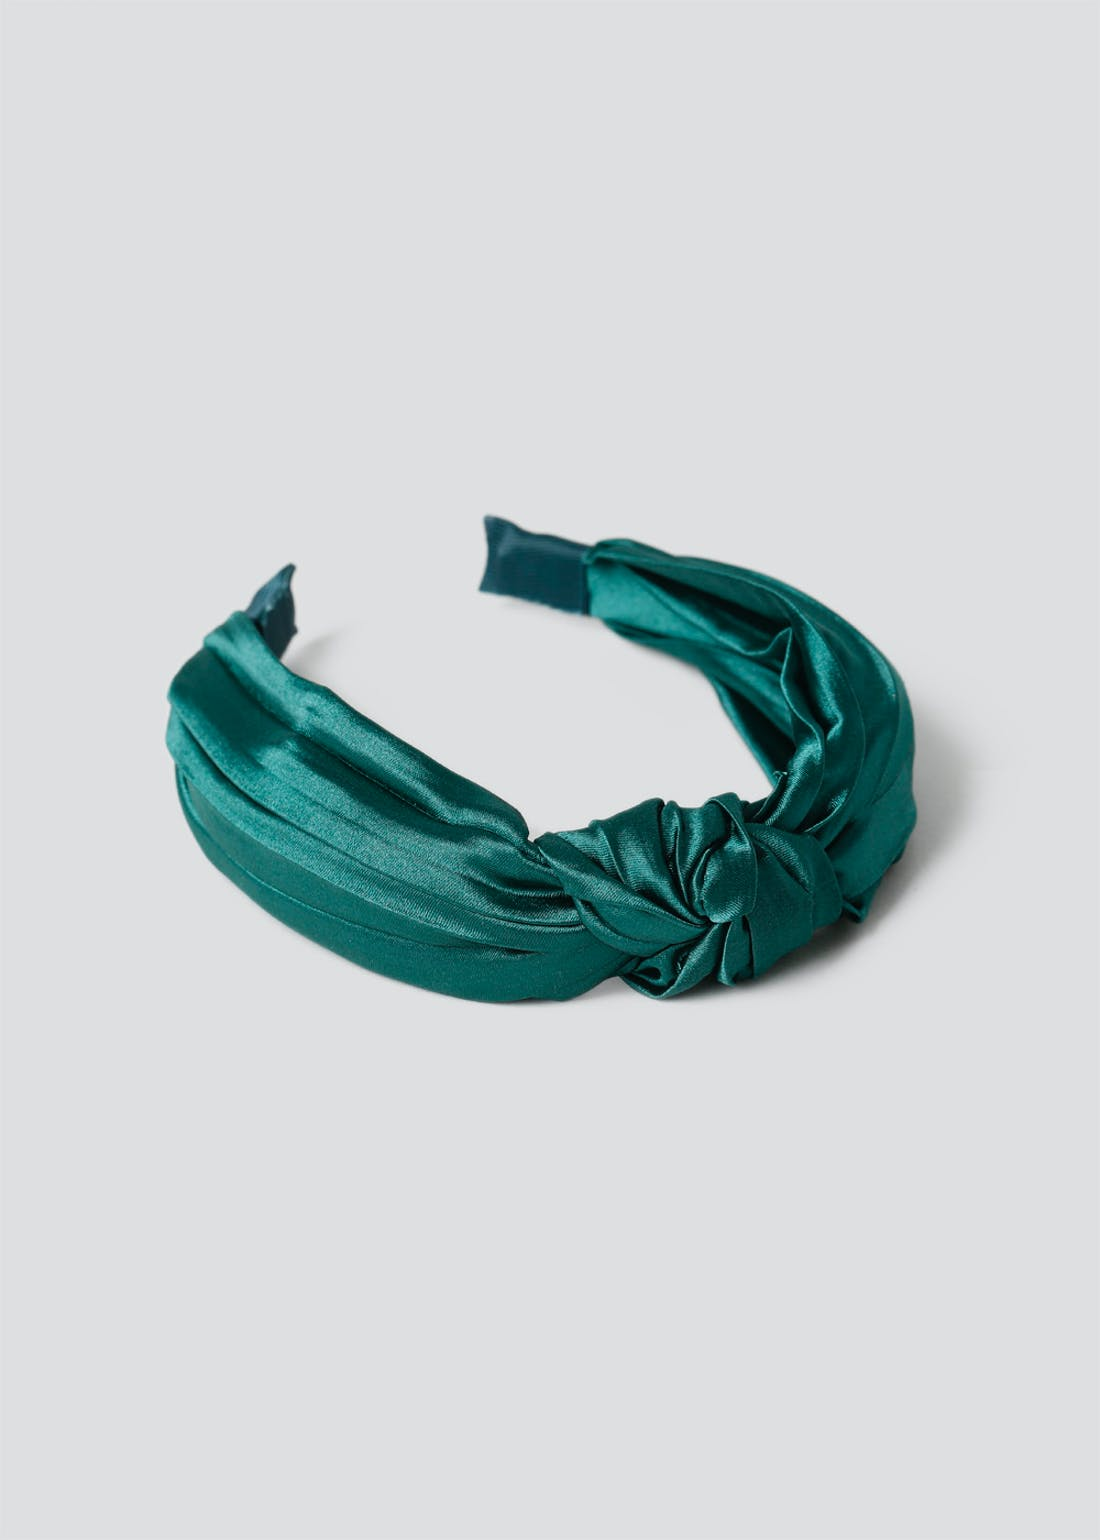 Pleat Knot Alice Band.